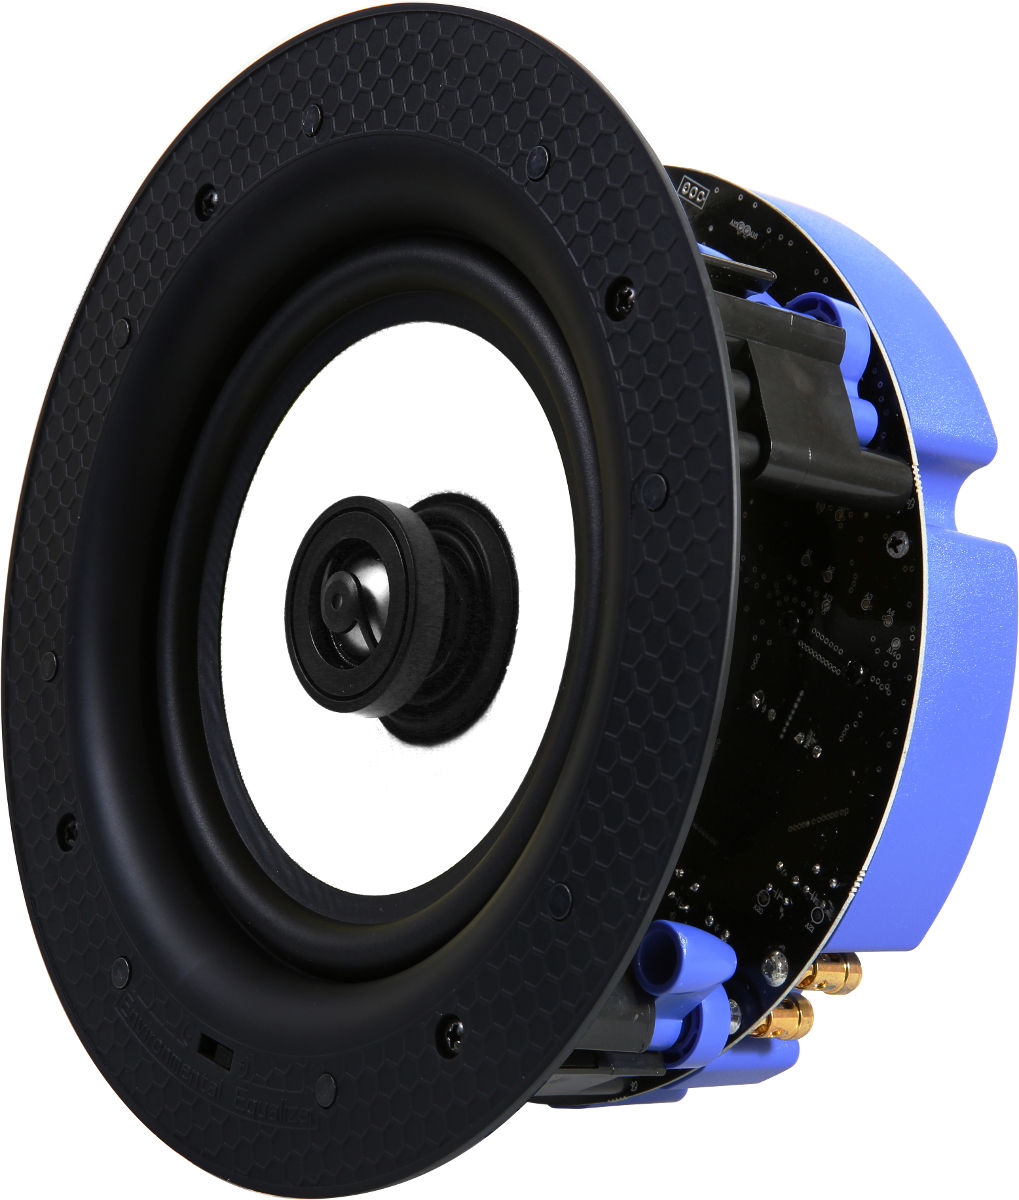 Enceintes Bluetooth encastrables Lithe Audio IP44 Bluetooth Ceiling Speaker (pin protect)